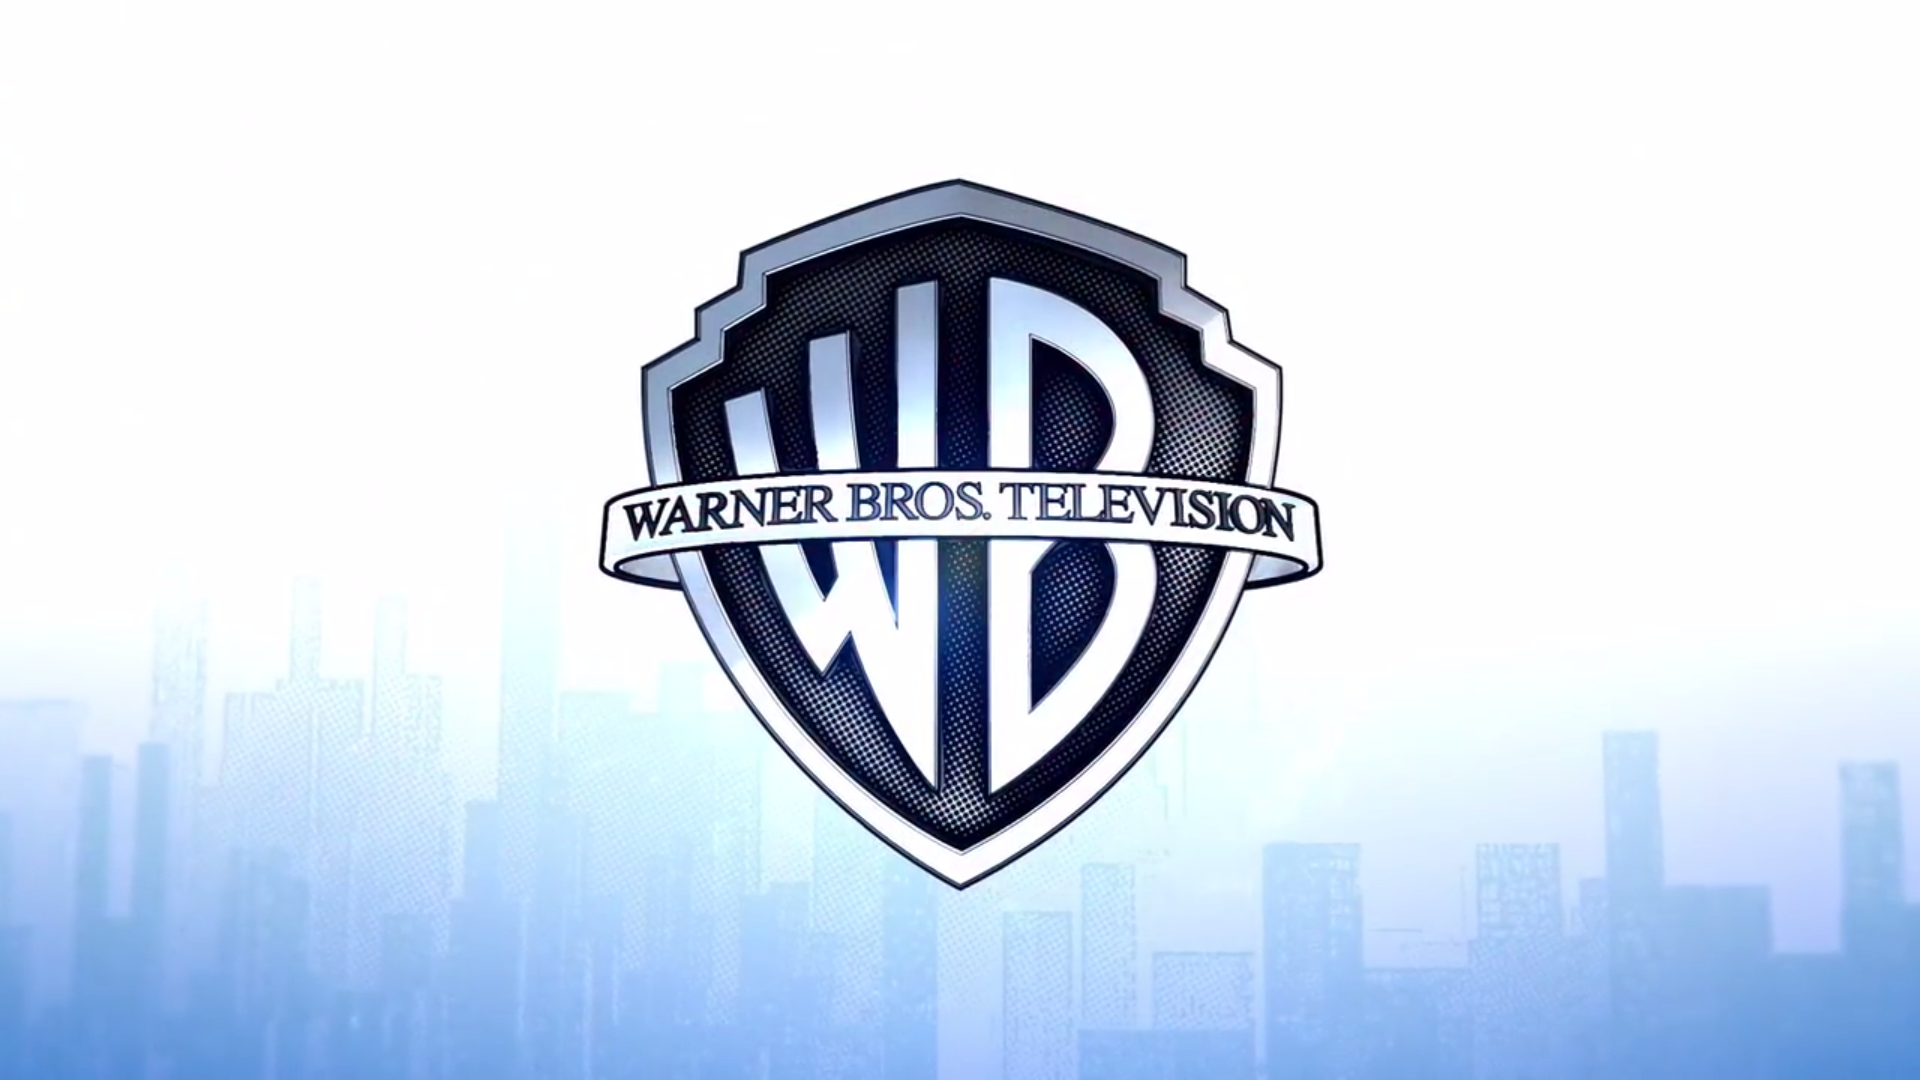 Warner Bros. Television (Powerless)